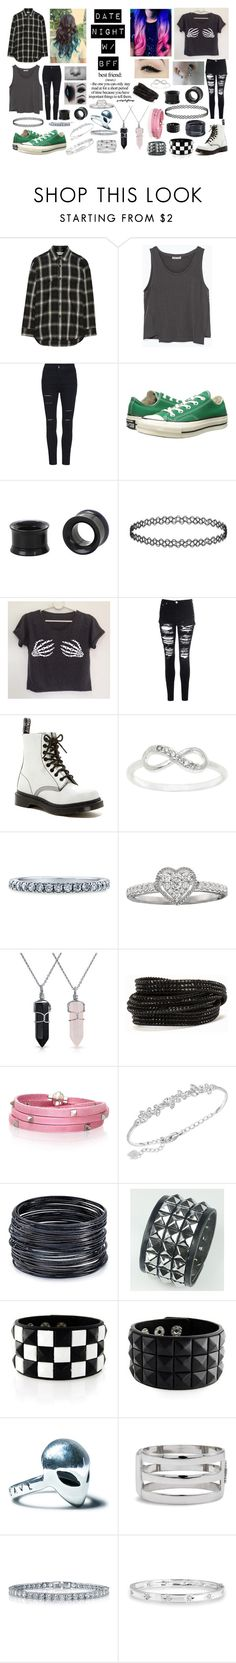 """Date N W/ Bff"" by lillybearrawrr on Polyvore featuring Yves Saint Laurent, Zara, Converse, Glamorous, Dr. Martens, Anatomy Of, City x City, BERRICLE, Bling Jewelry and Pieces"